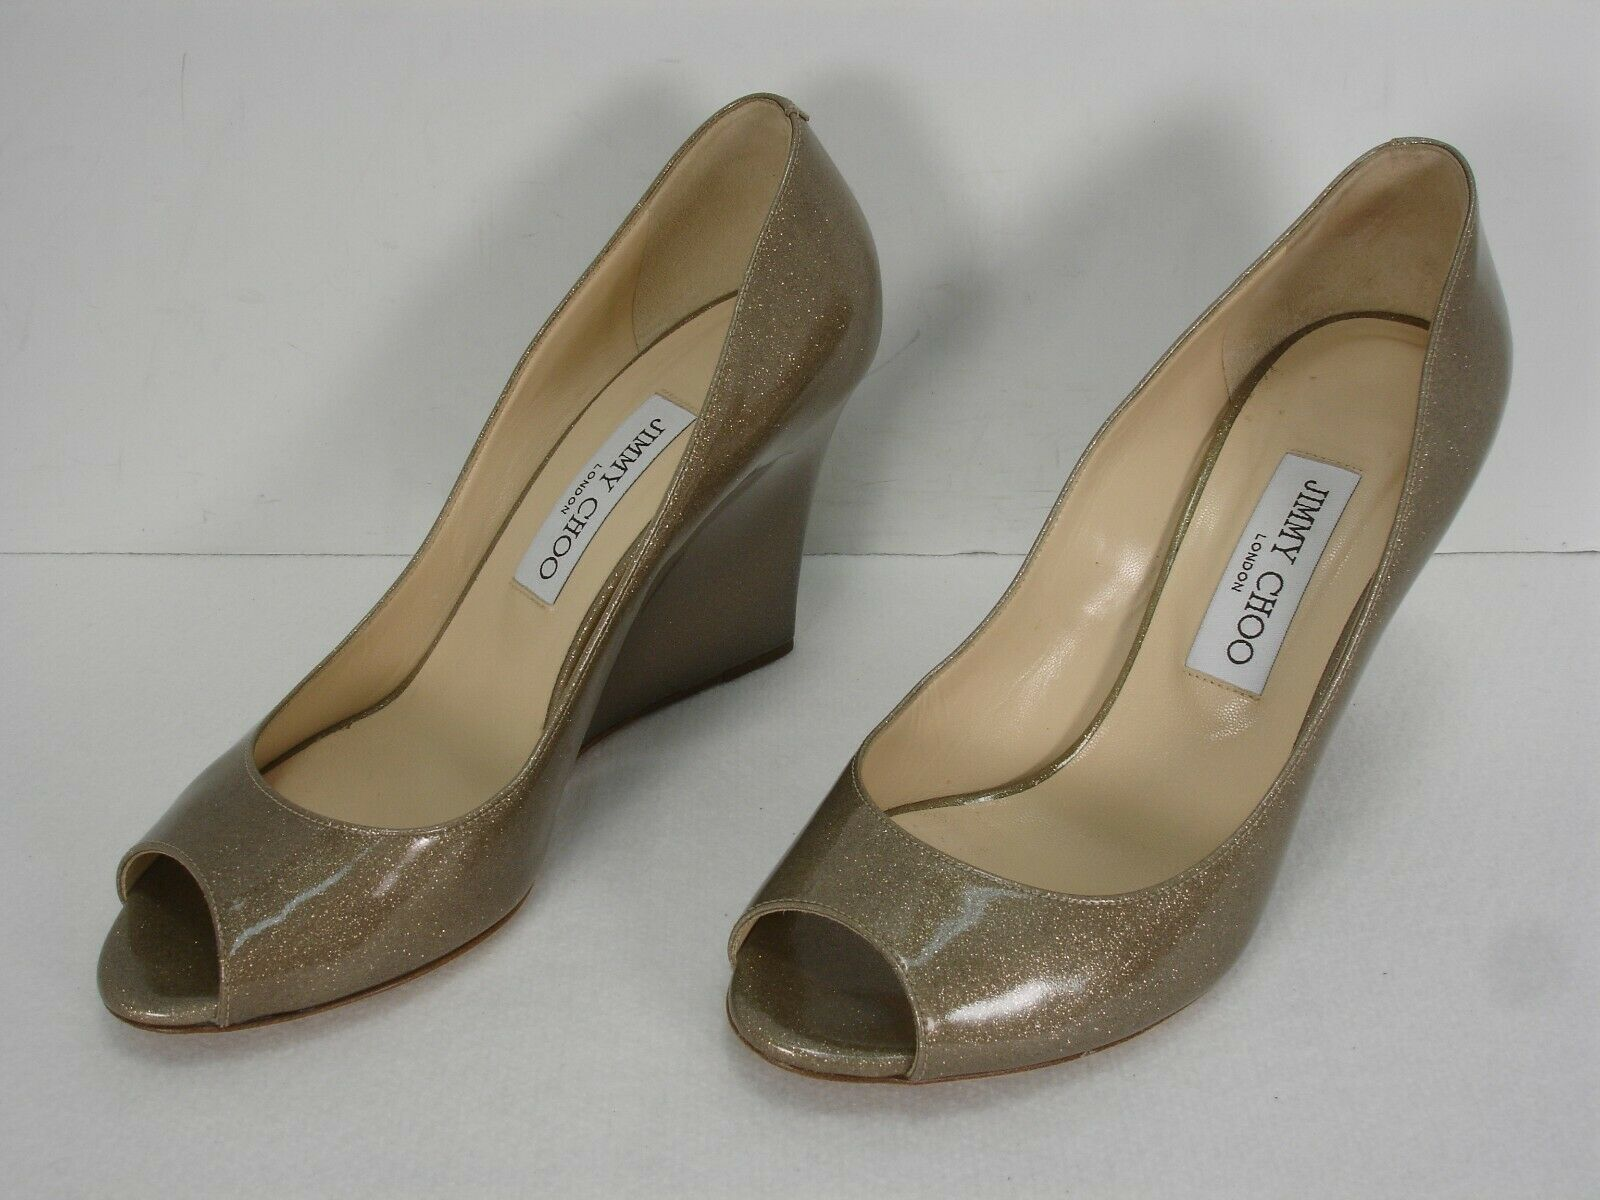 JIMMY CHOO BELLO SHIMMER PATENT LEATHER PEEP TOE WEDGES PUMPS SHOES WOMEN'S 38